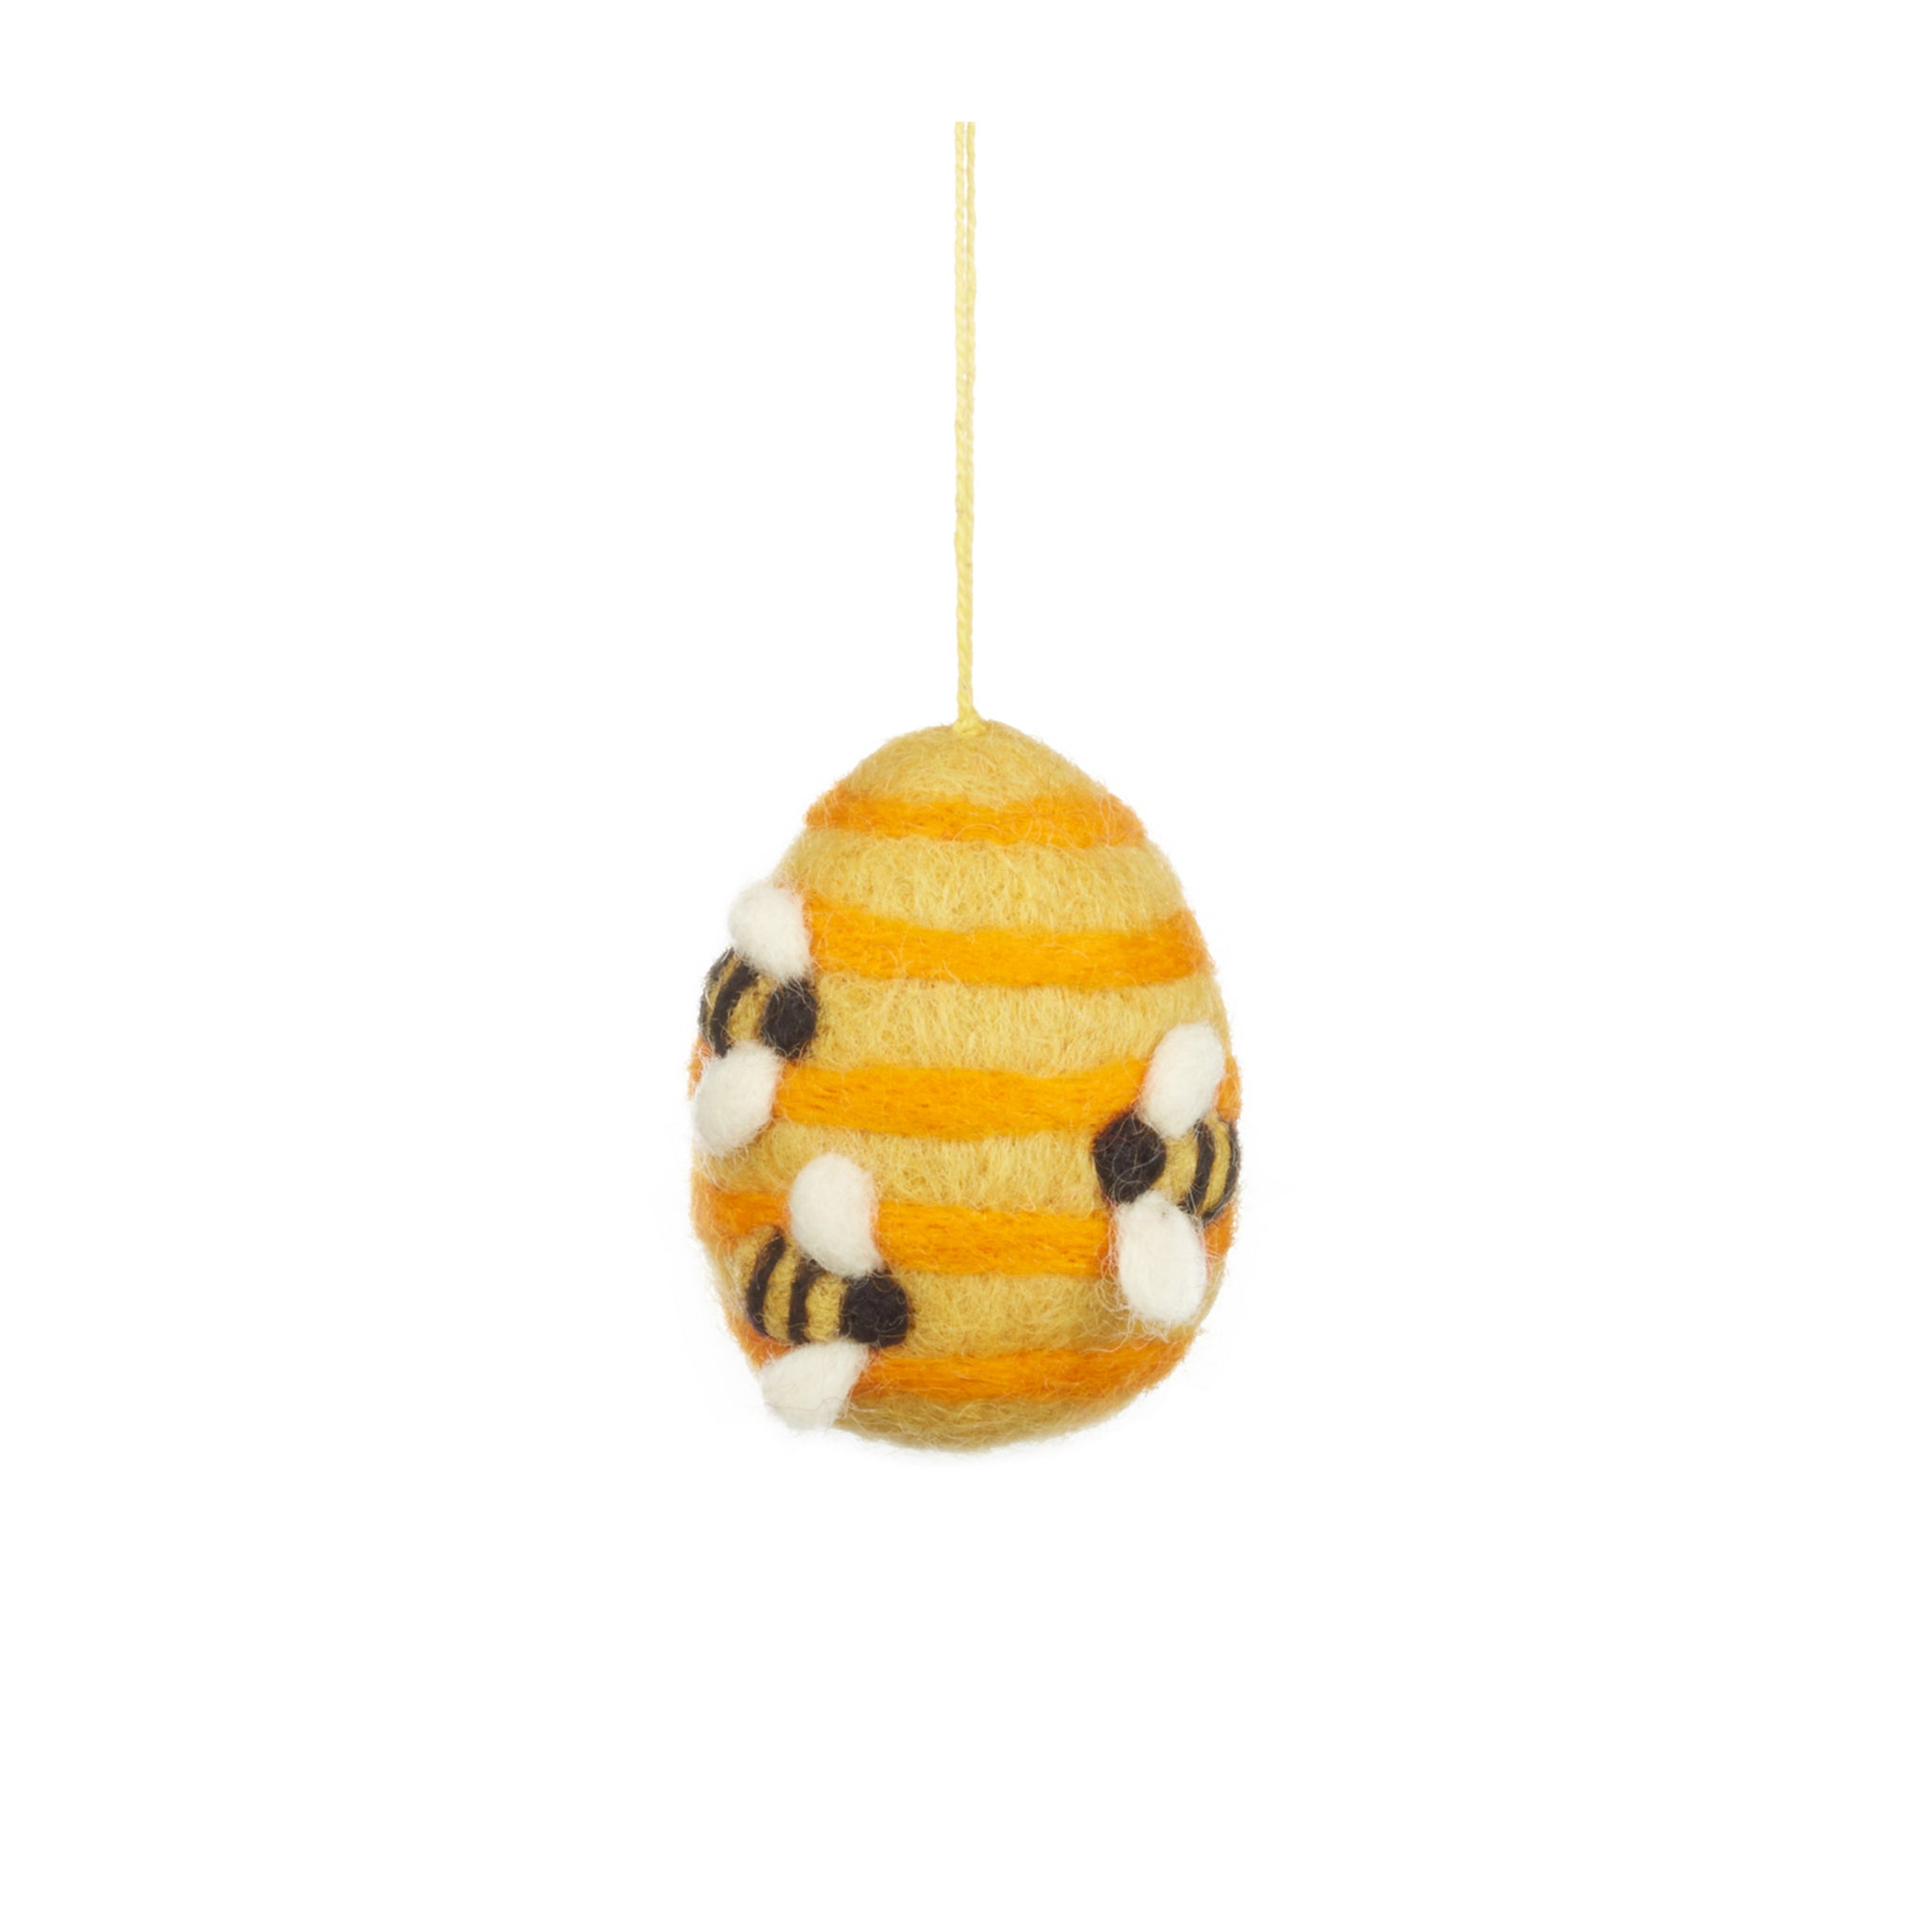 Felt So Good Busy Beehive Felt Tree Decoration Gifts Christmas Decoration